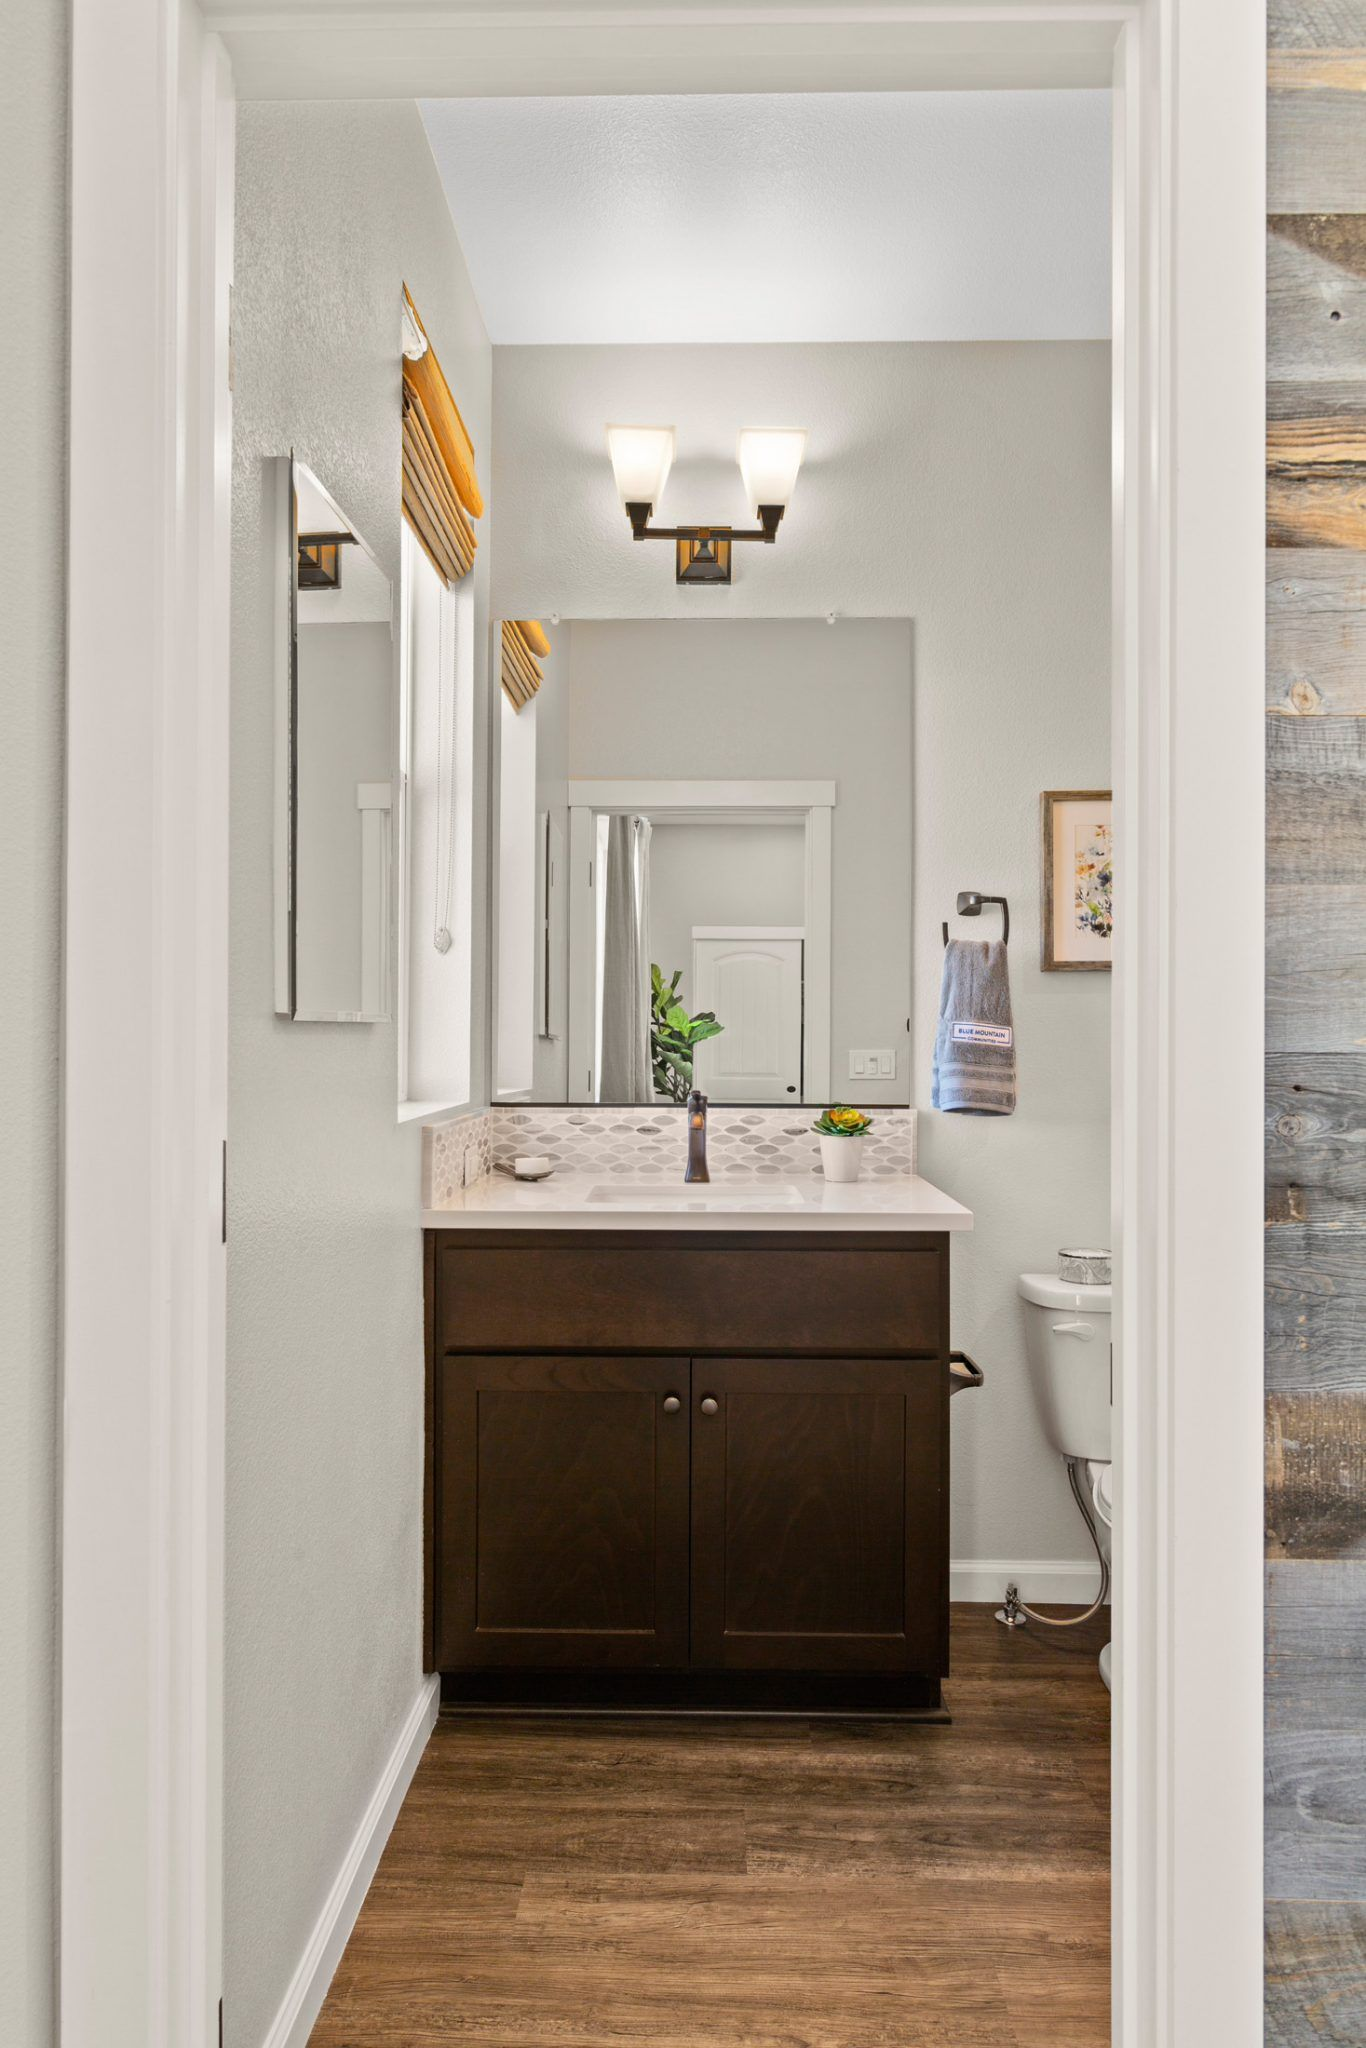 Bathroom featured in the Plan A By Blue Mountain Communities in Santa Rosa, CA